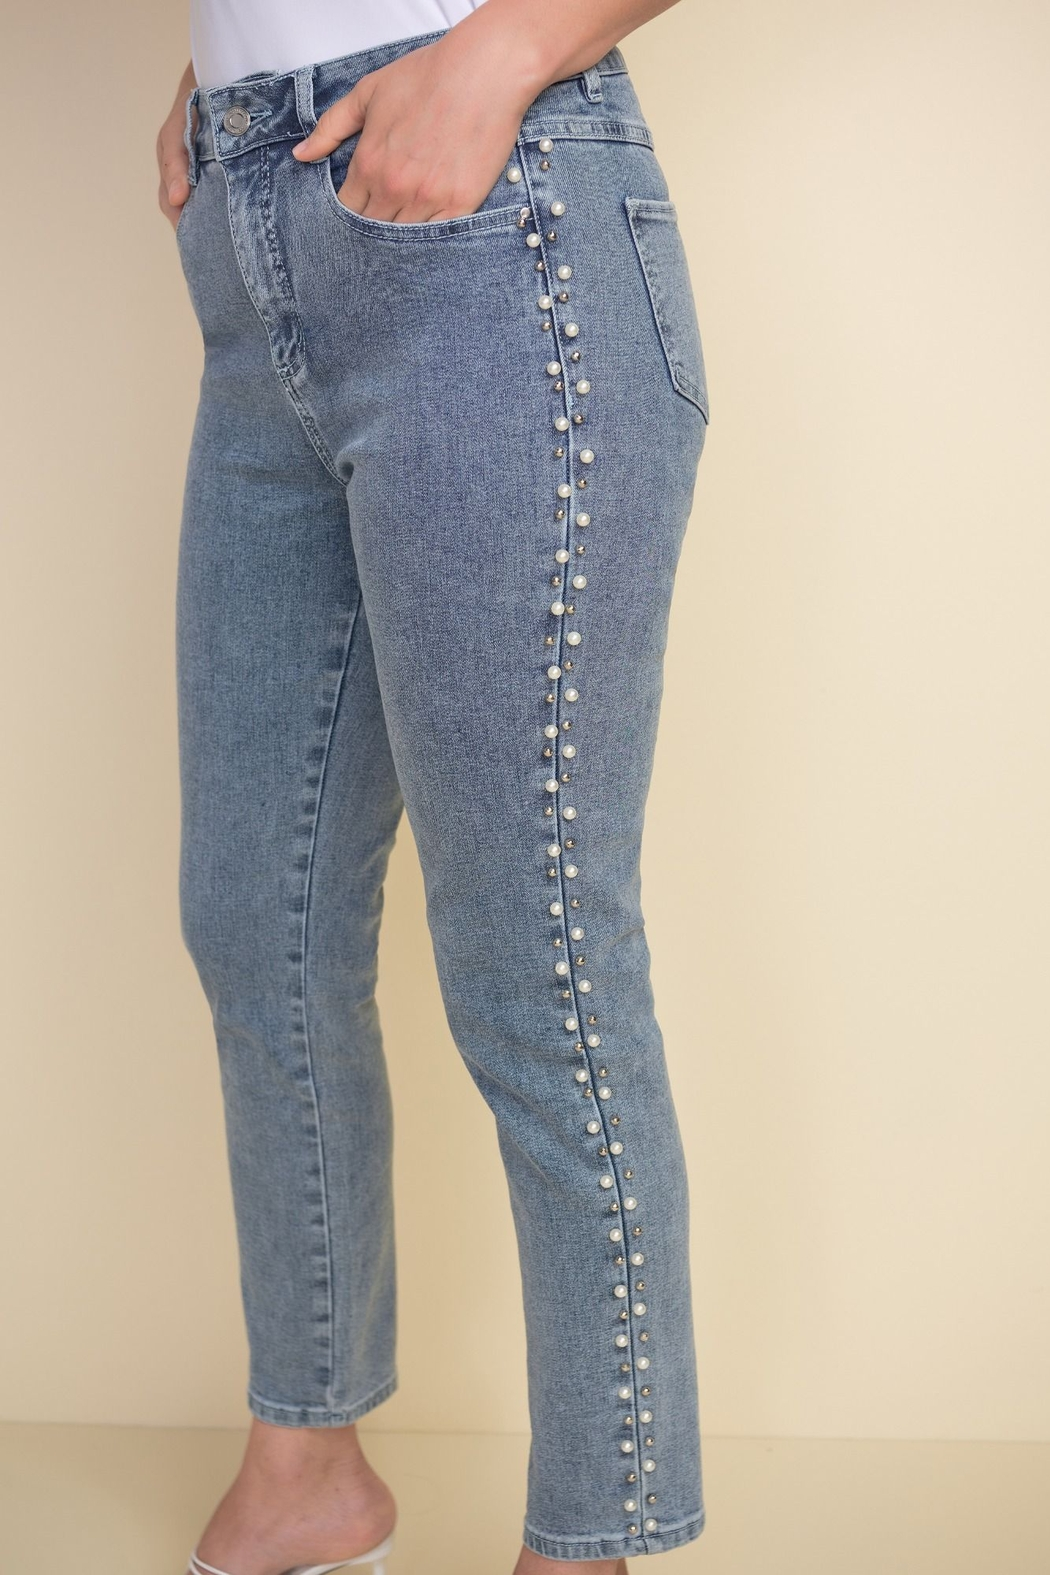 Joseph Ribkoff  Ankle length light denim jeans with beading on sides - Side Cropped Image